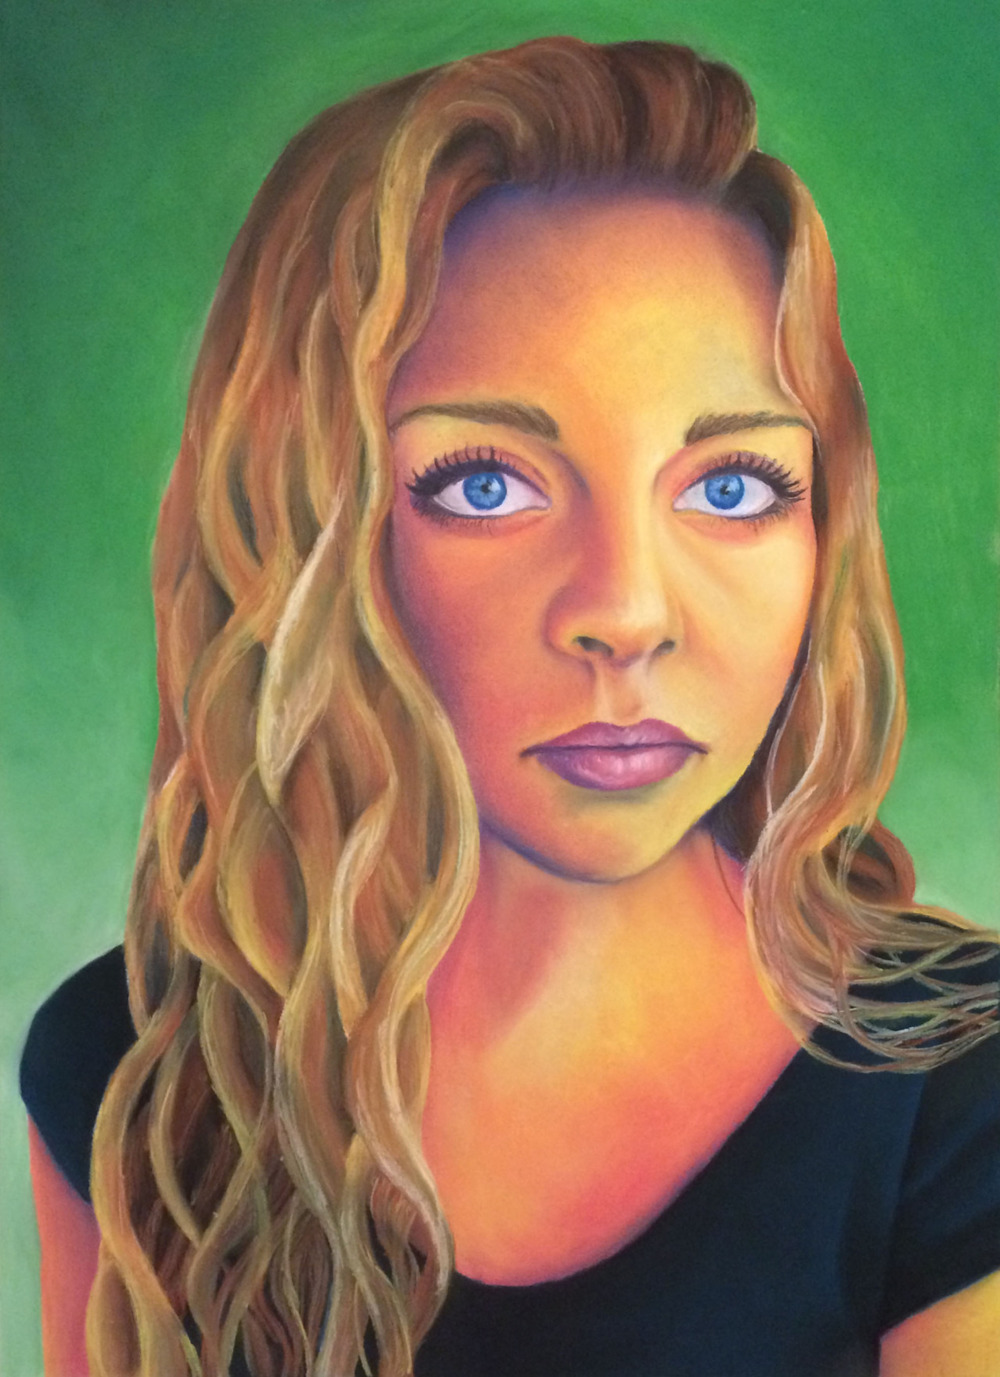 Dry pastel, 22x30 in. Self portrait for Drawing II class.